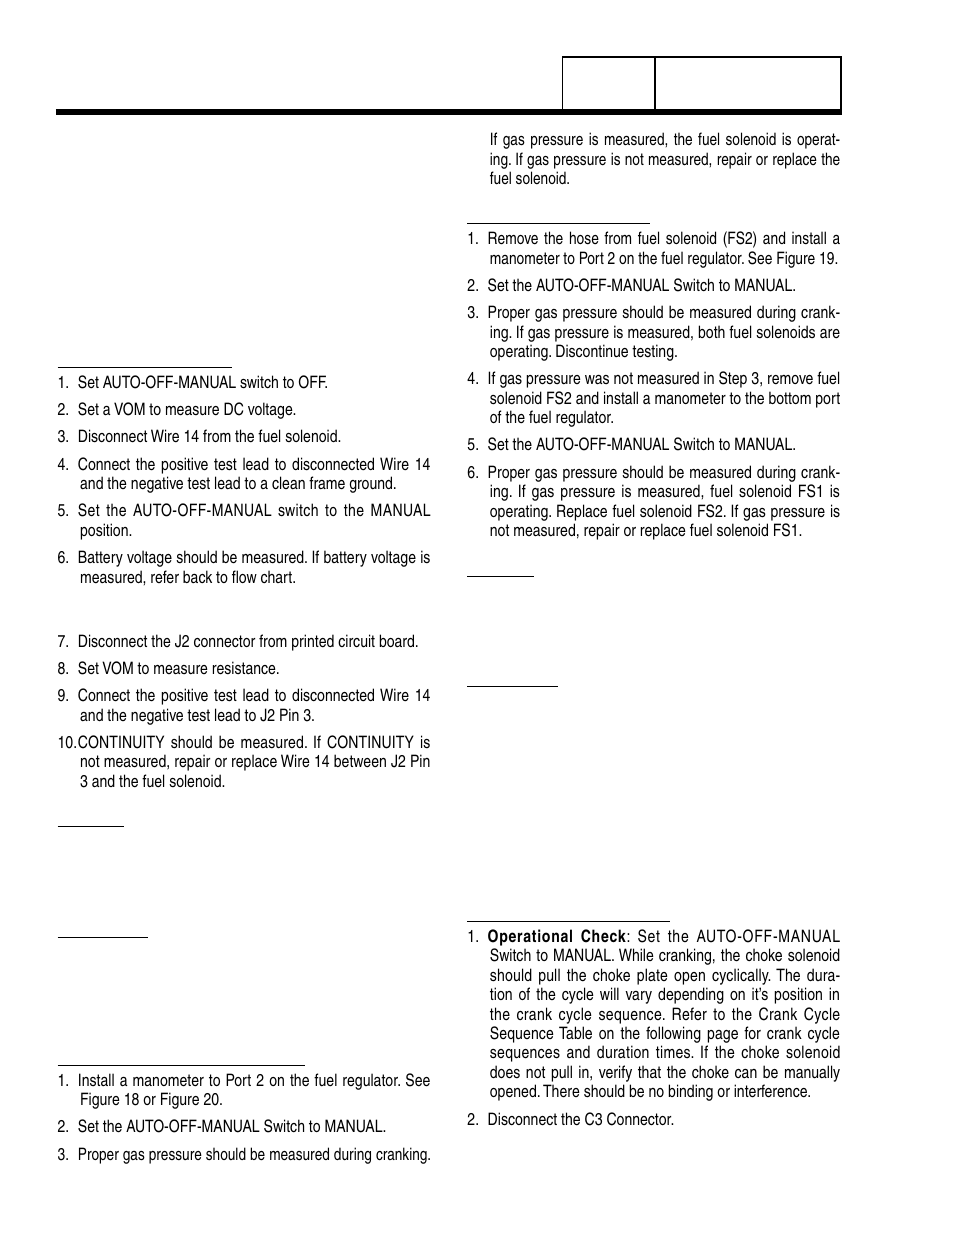 Test 68 – check fuel solenoid, Test 69 – check choke solenoid | Generac  Power Systems 8 kW LP User Manual | Page 134 / 192